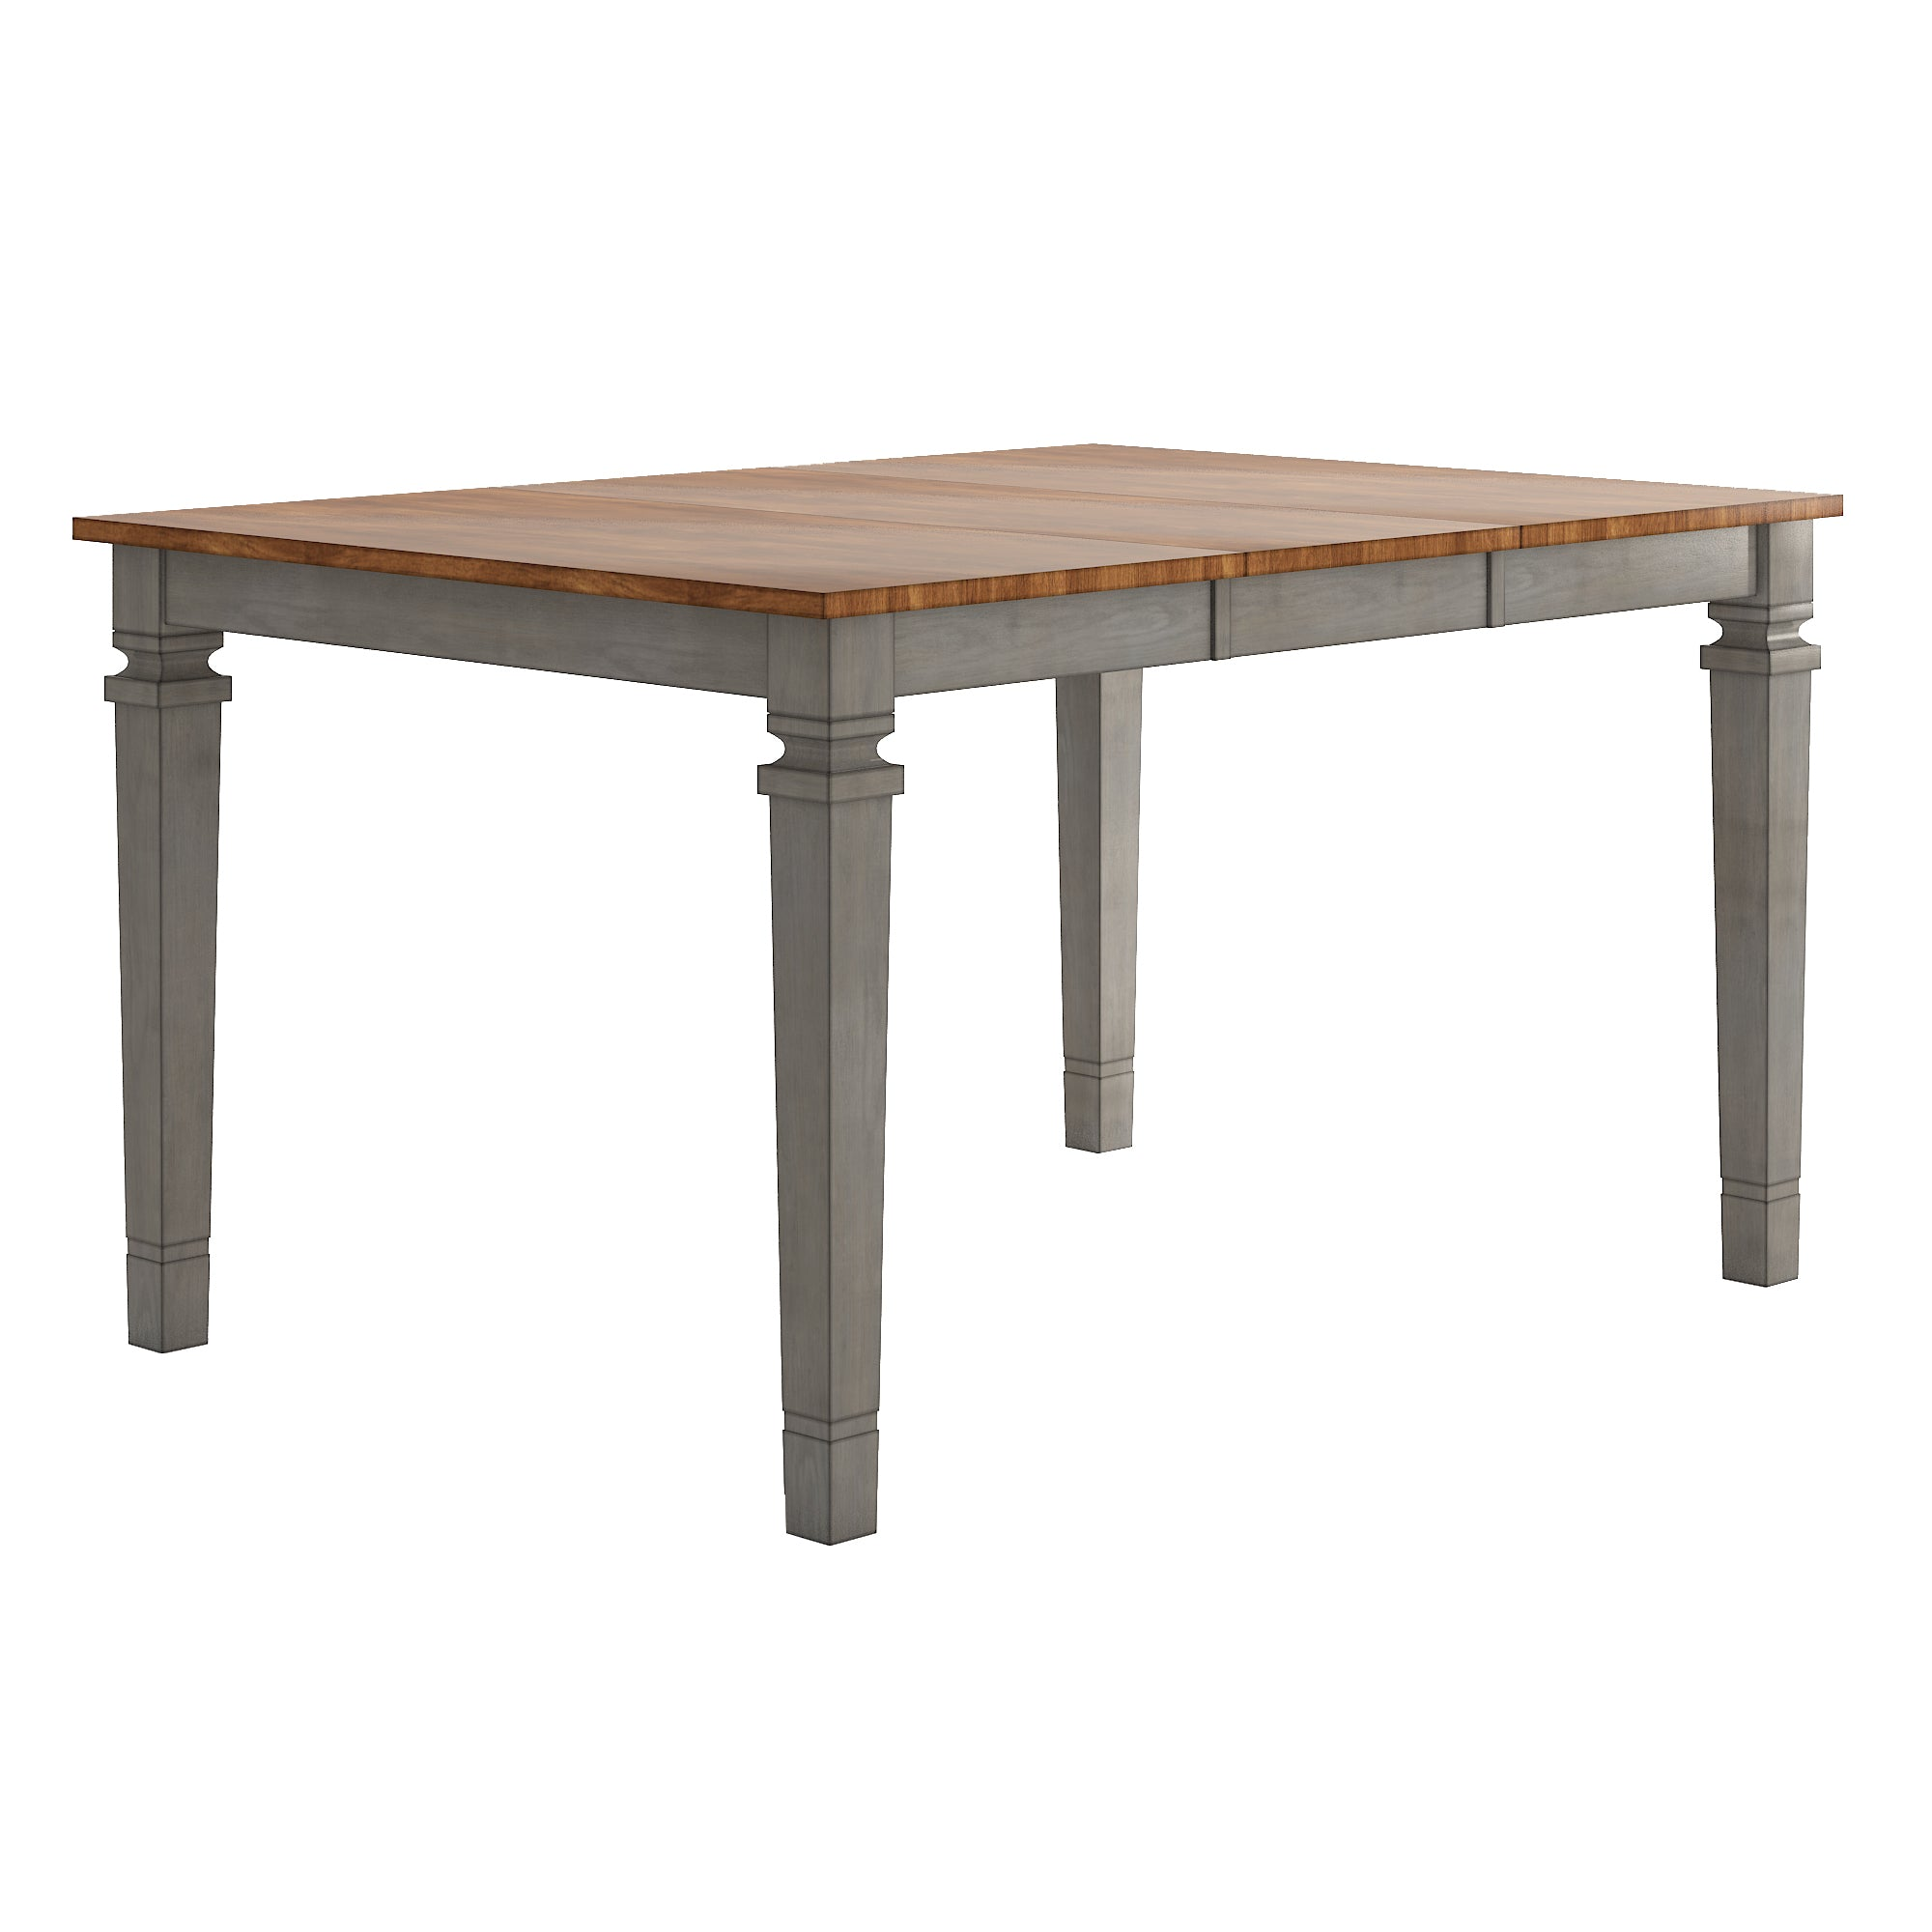 Solid Wood Extendable Counter Height Dining Table - Antique Grey